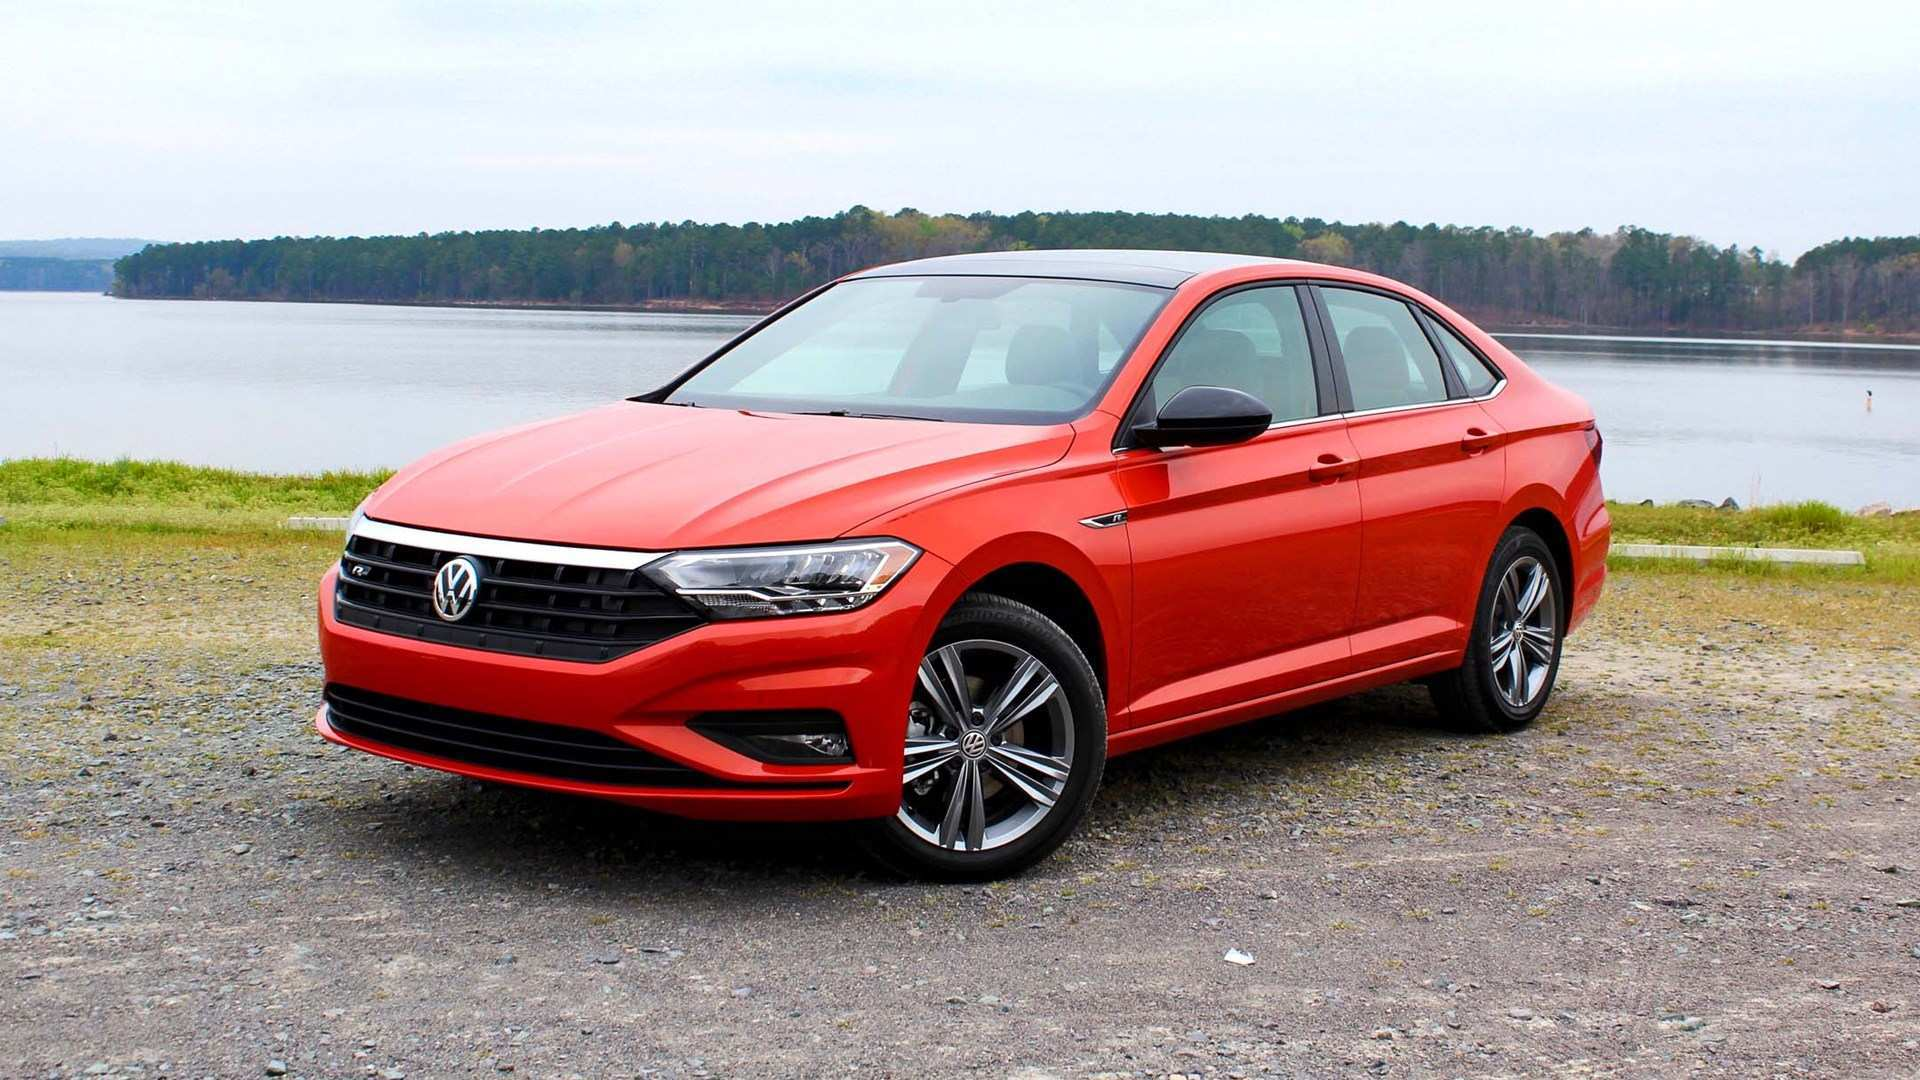 27 The Best Vw Jetta 2019 Canada Release Date And Concept